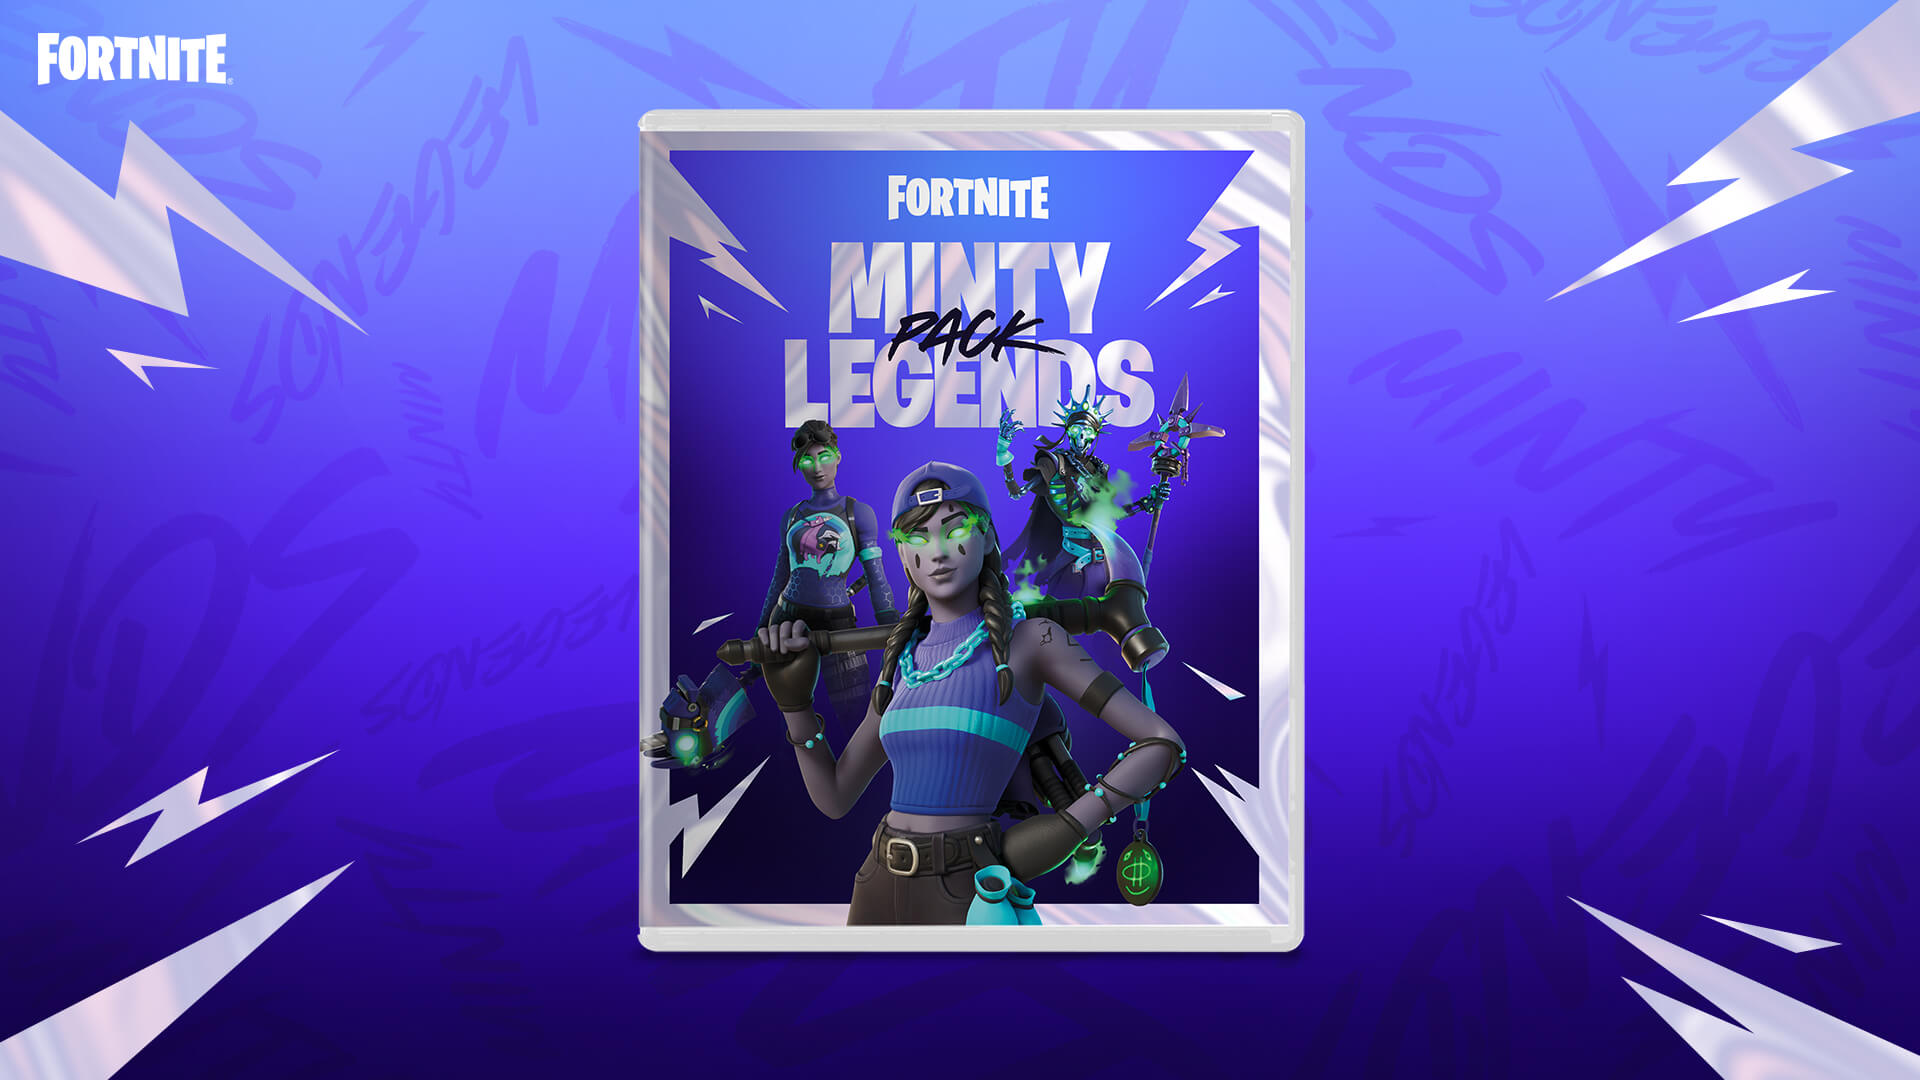 Fortnite The Minty Legends Pack